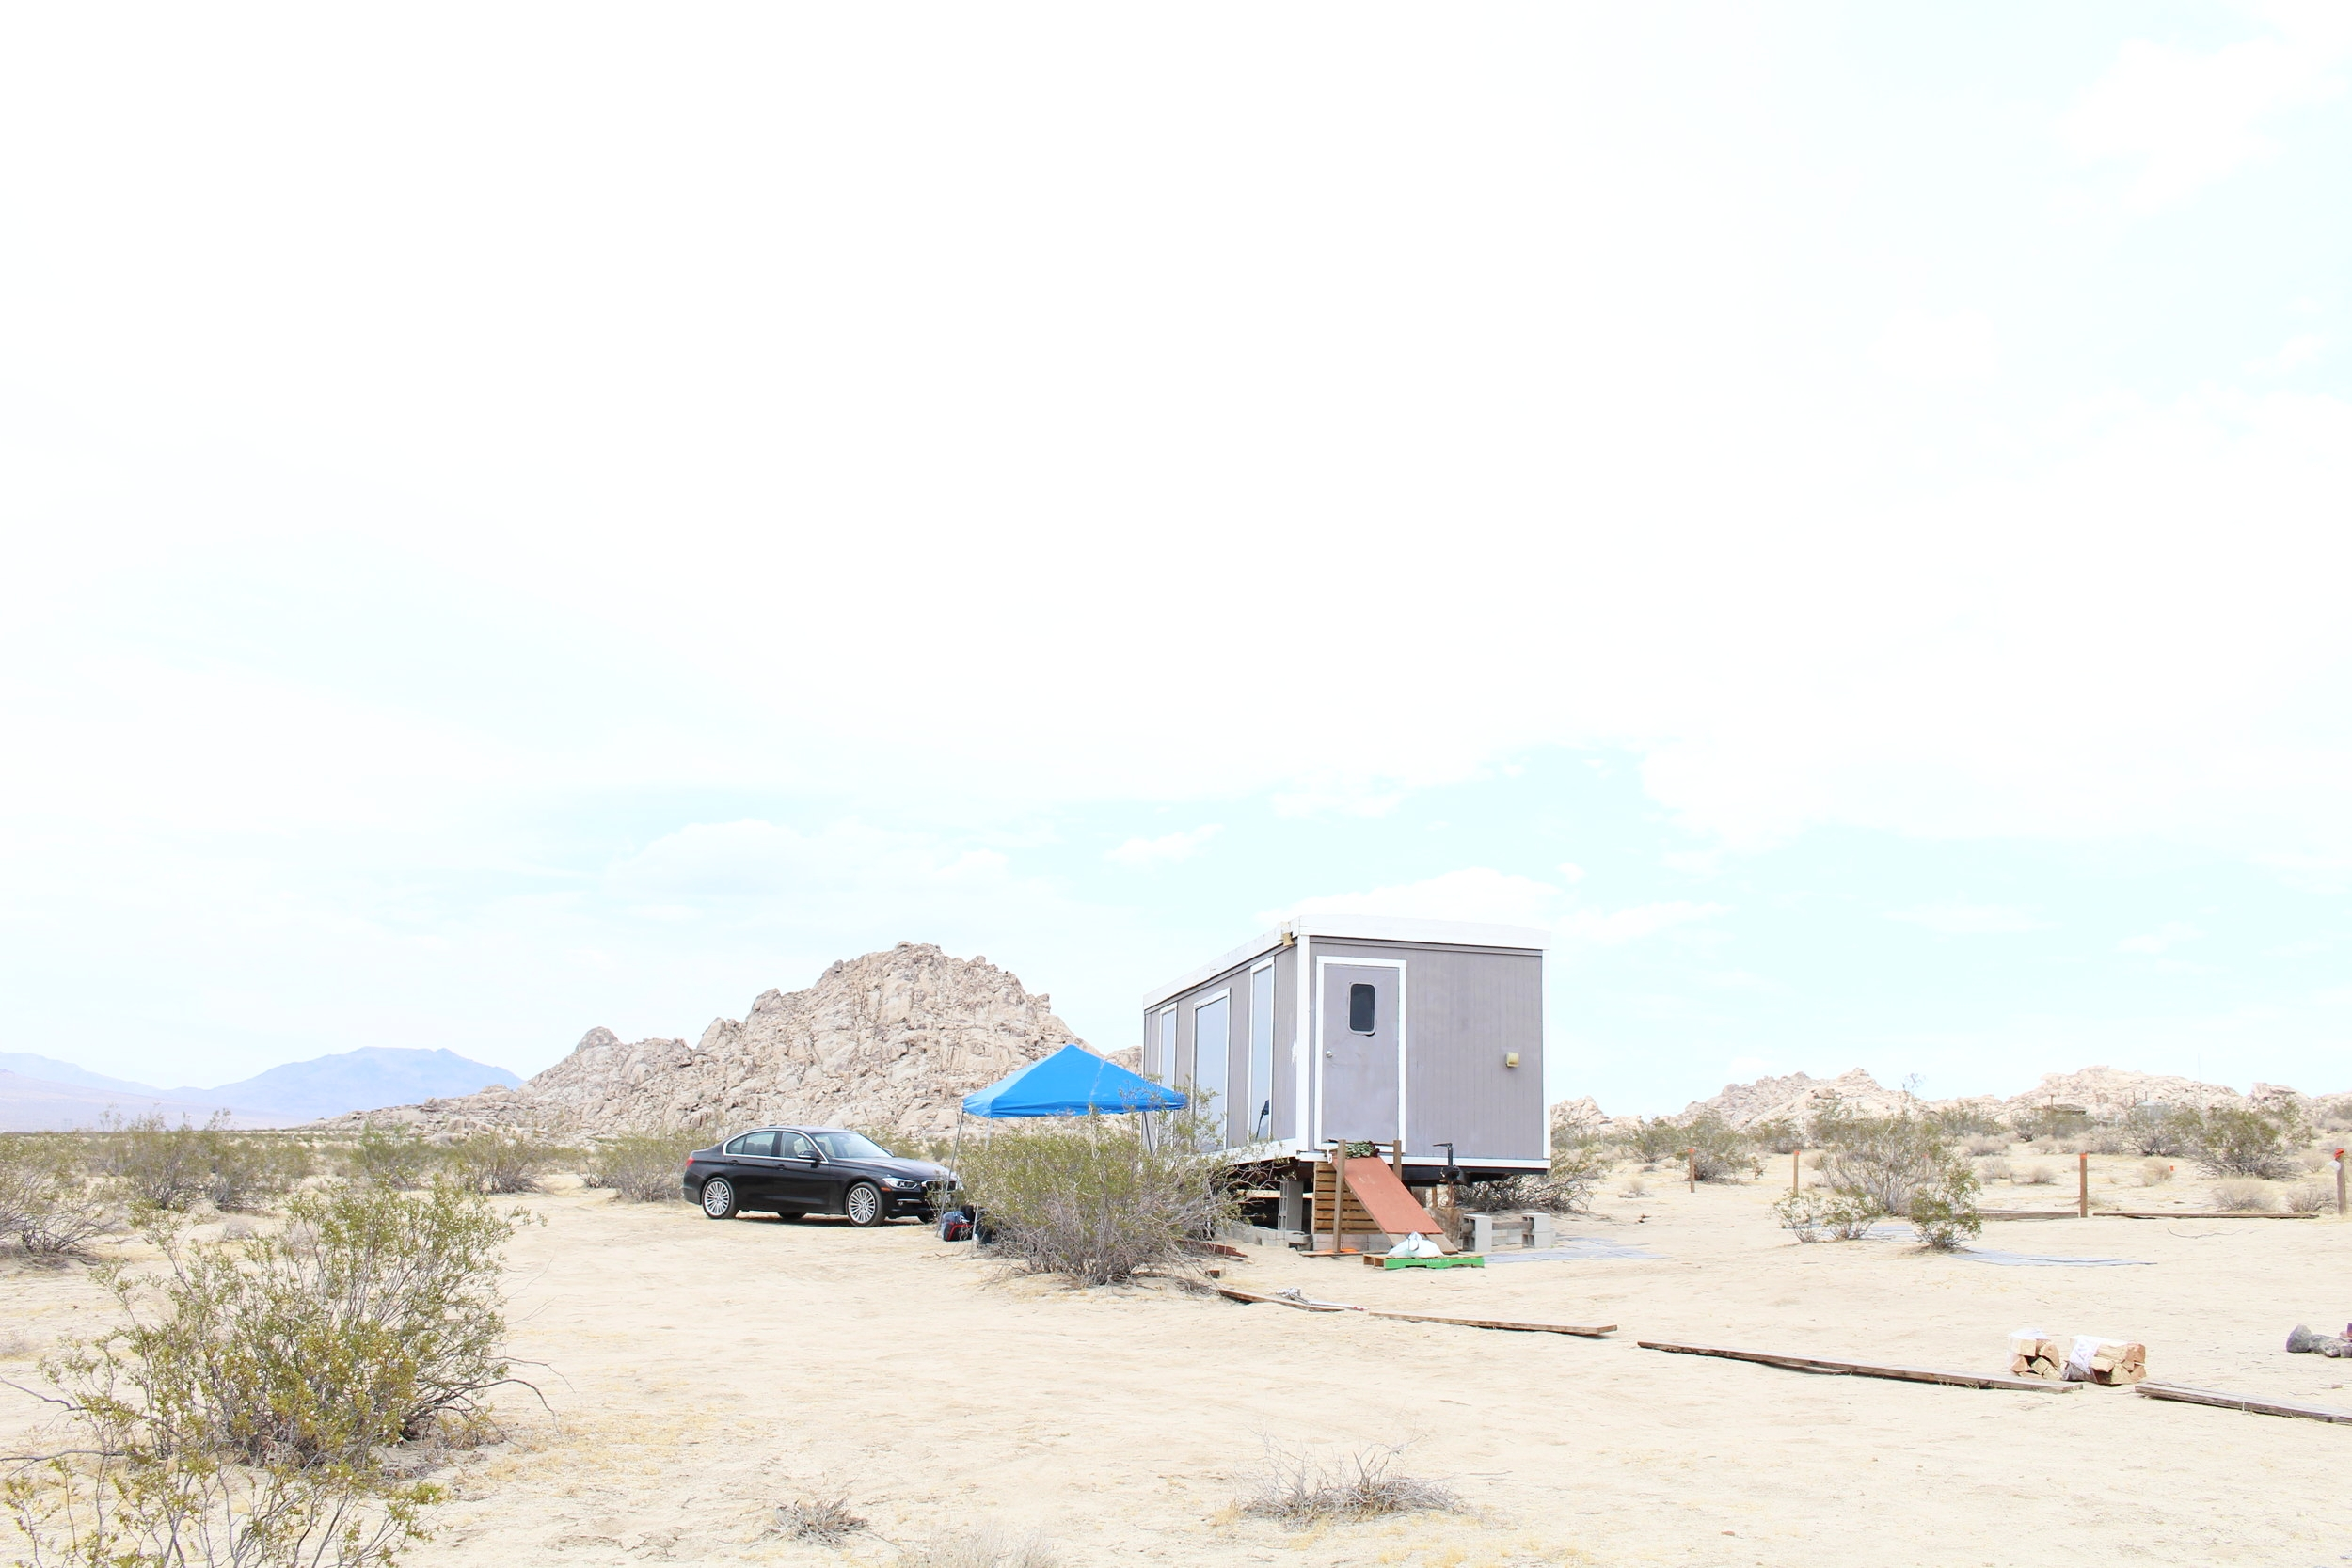 Our base camp for the desert shoot